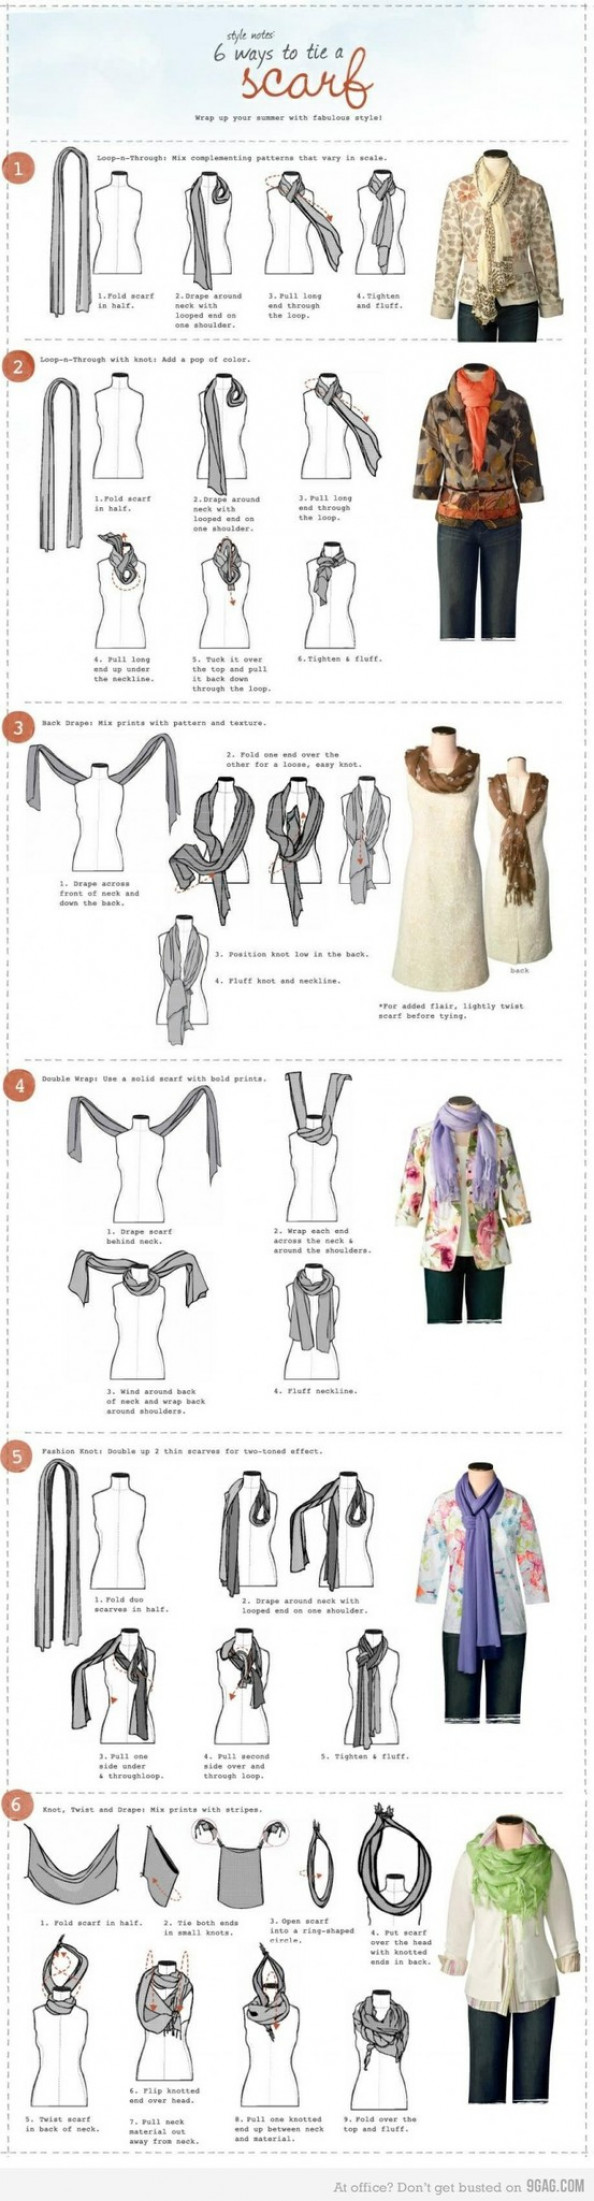 6 Ways to Tie a Scarf Infographic